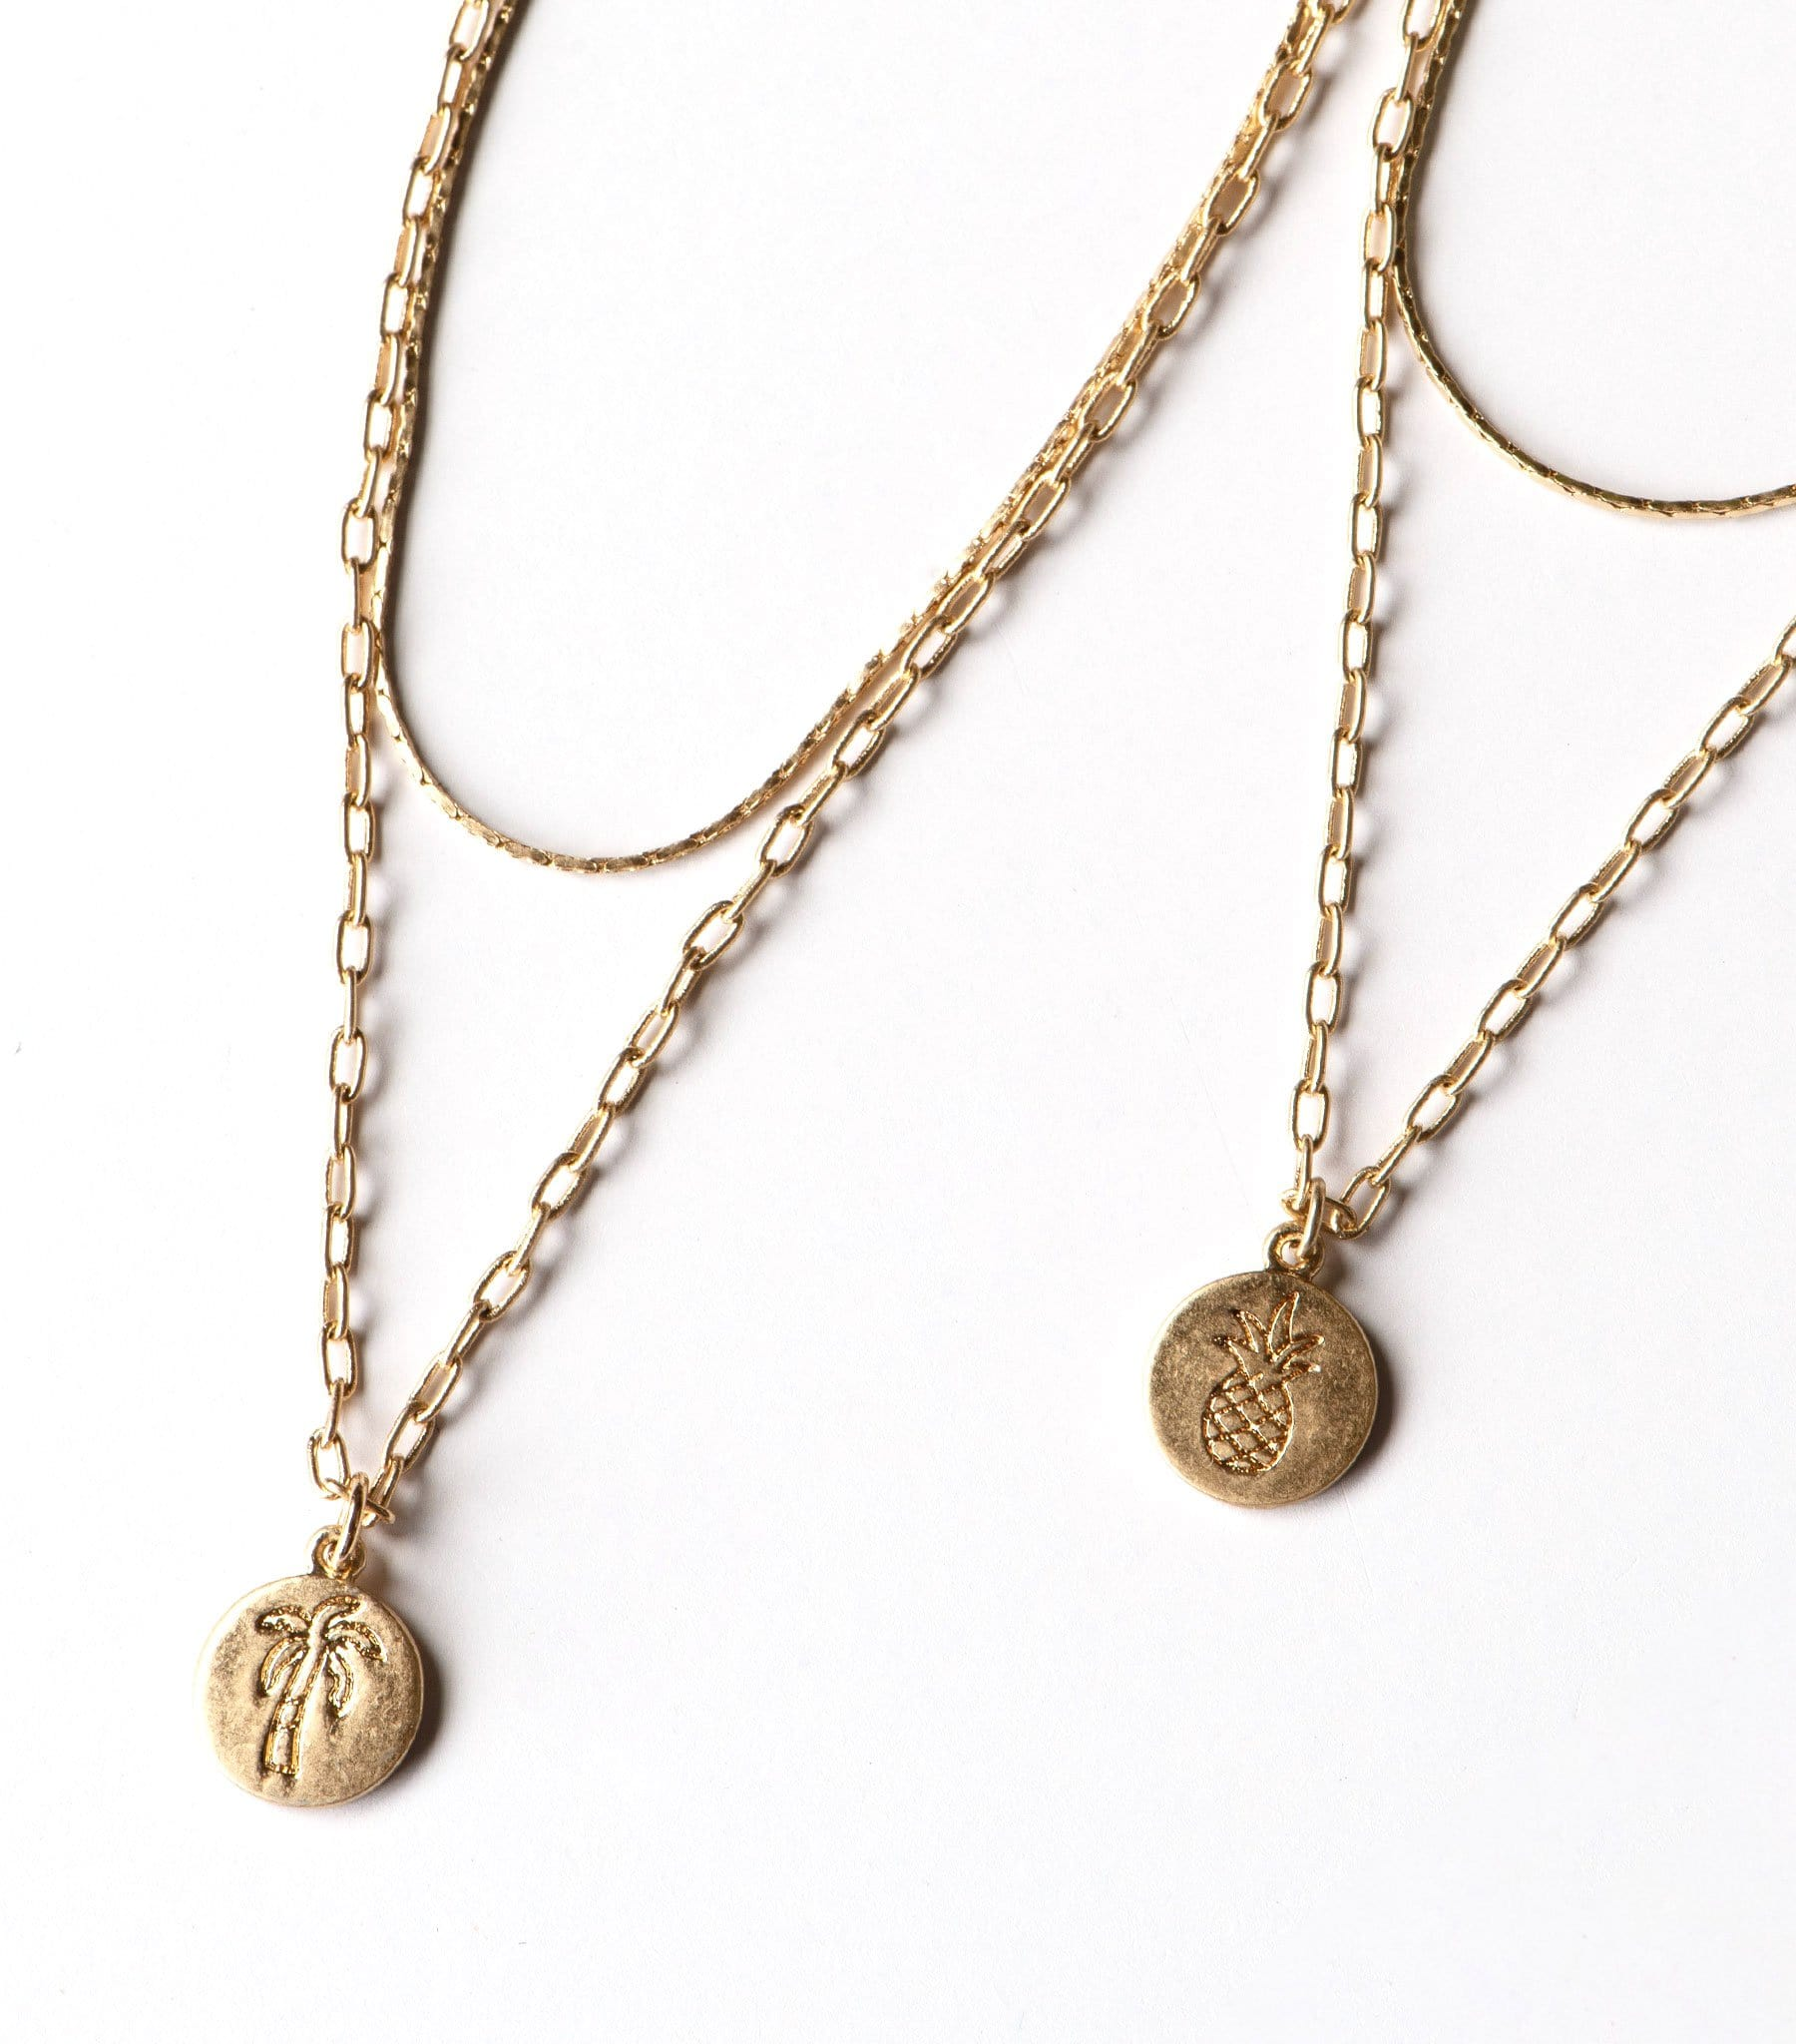 Charming Chain Necklace